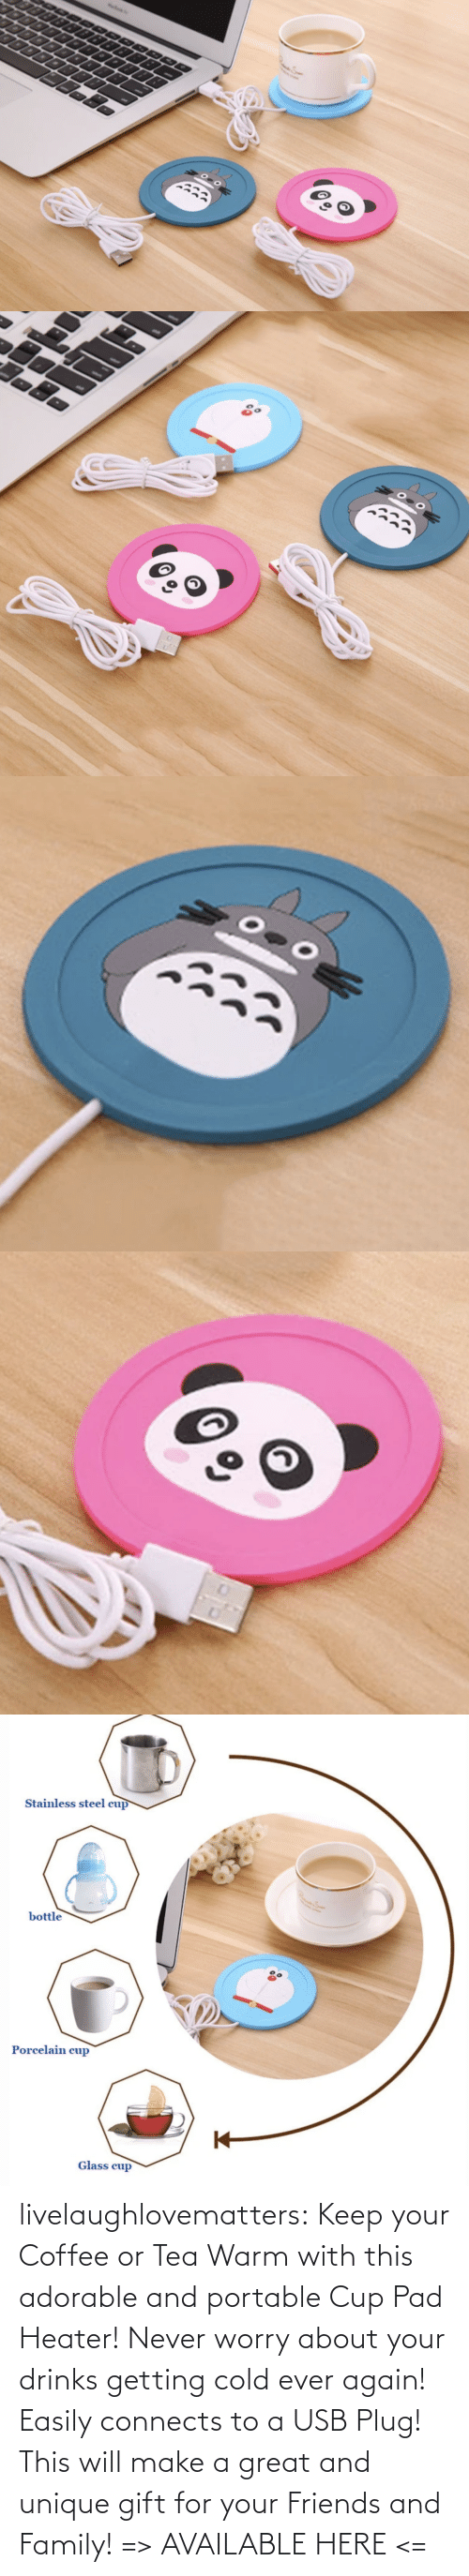 Drinks: livelaughlovematters: Keep your Coffee or Tea Warm with this adorable and portable Cup Pad Heater! Never worry about your drinks getting cold ever again! Easily connects to a USB Plug! This will make a great and unique gift for your Friends and Family! => AVAILABLE HERE <=